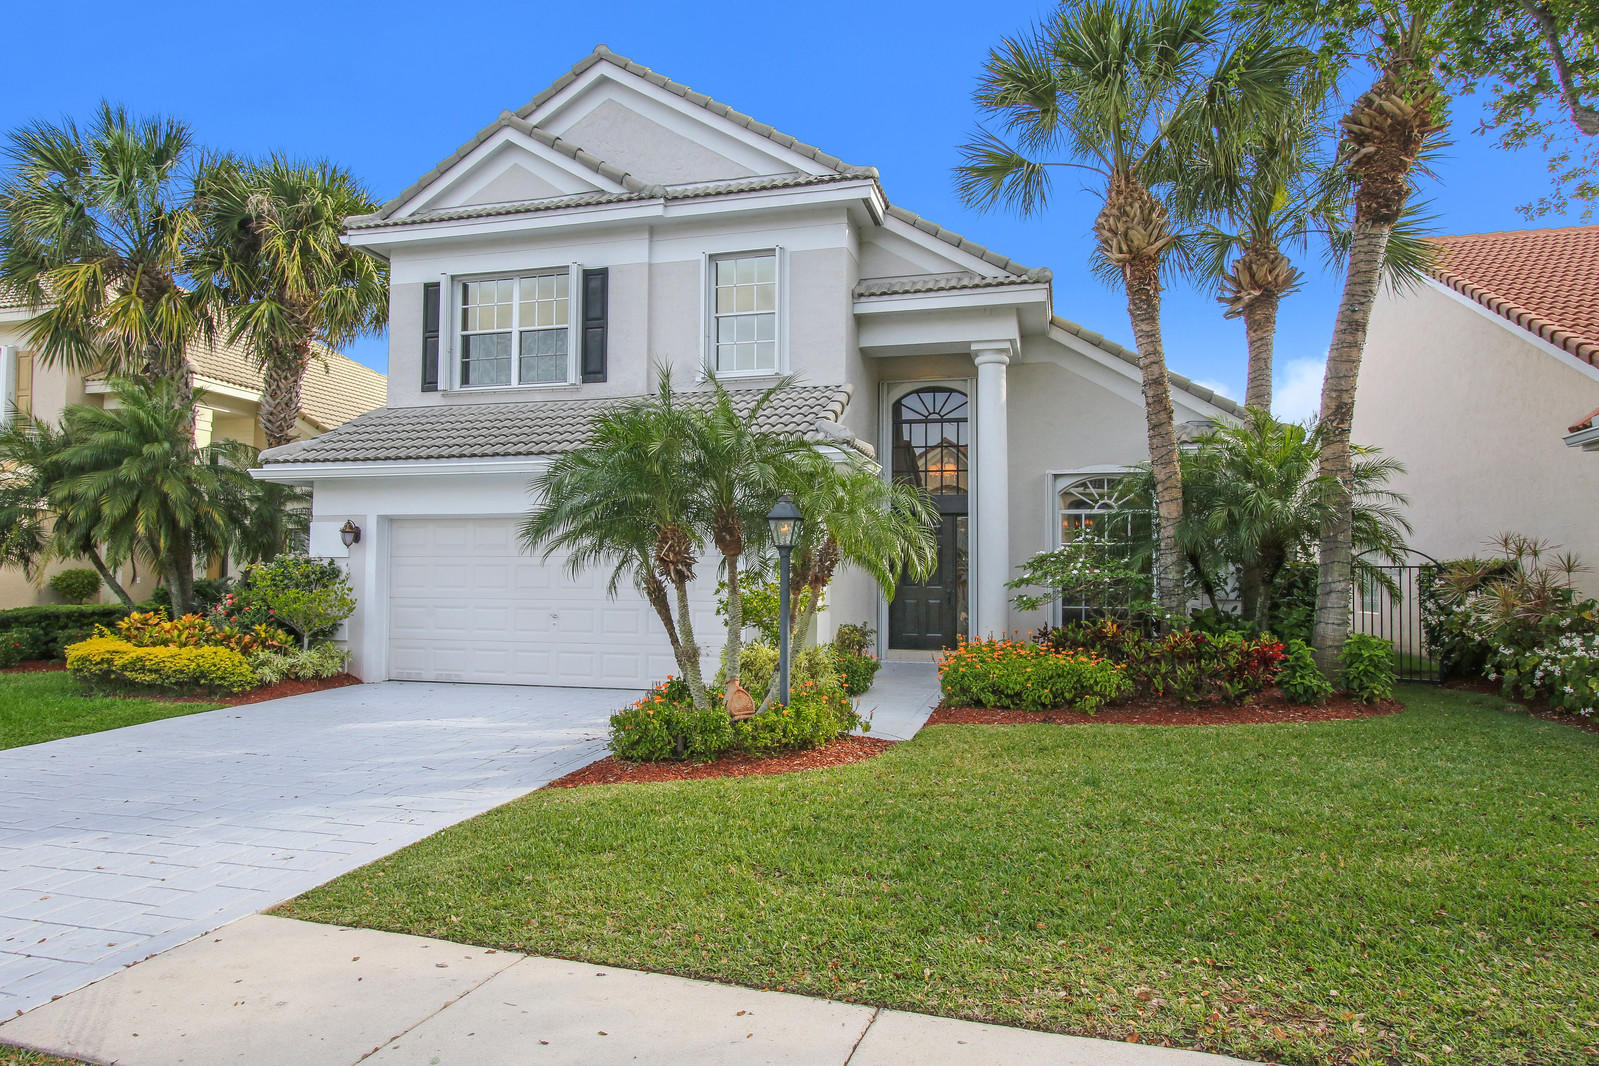 Home for sale in Sanctuary Palm Beach Gardens Florida